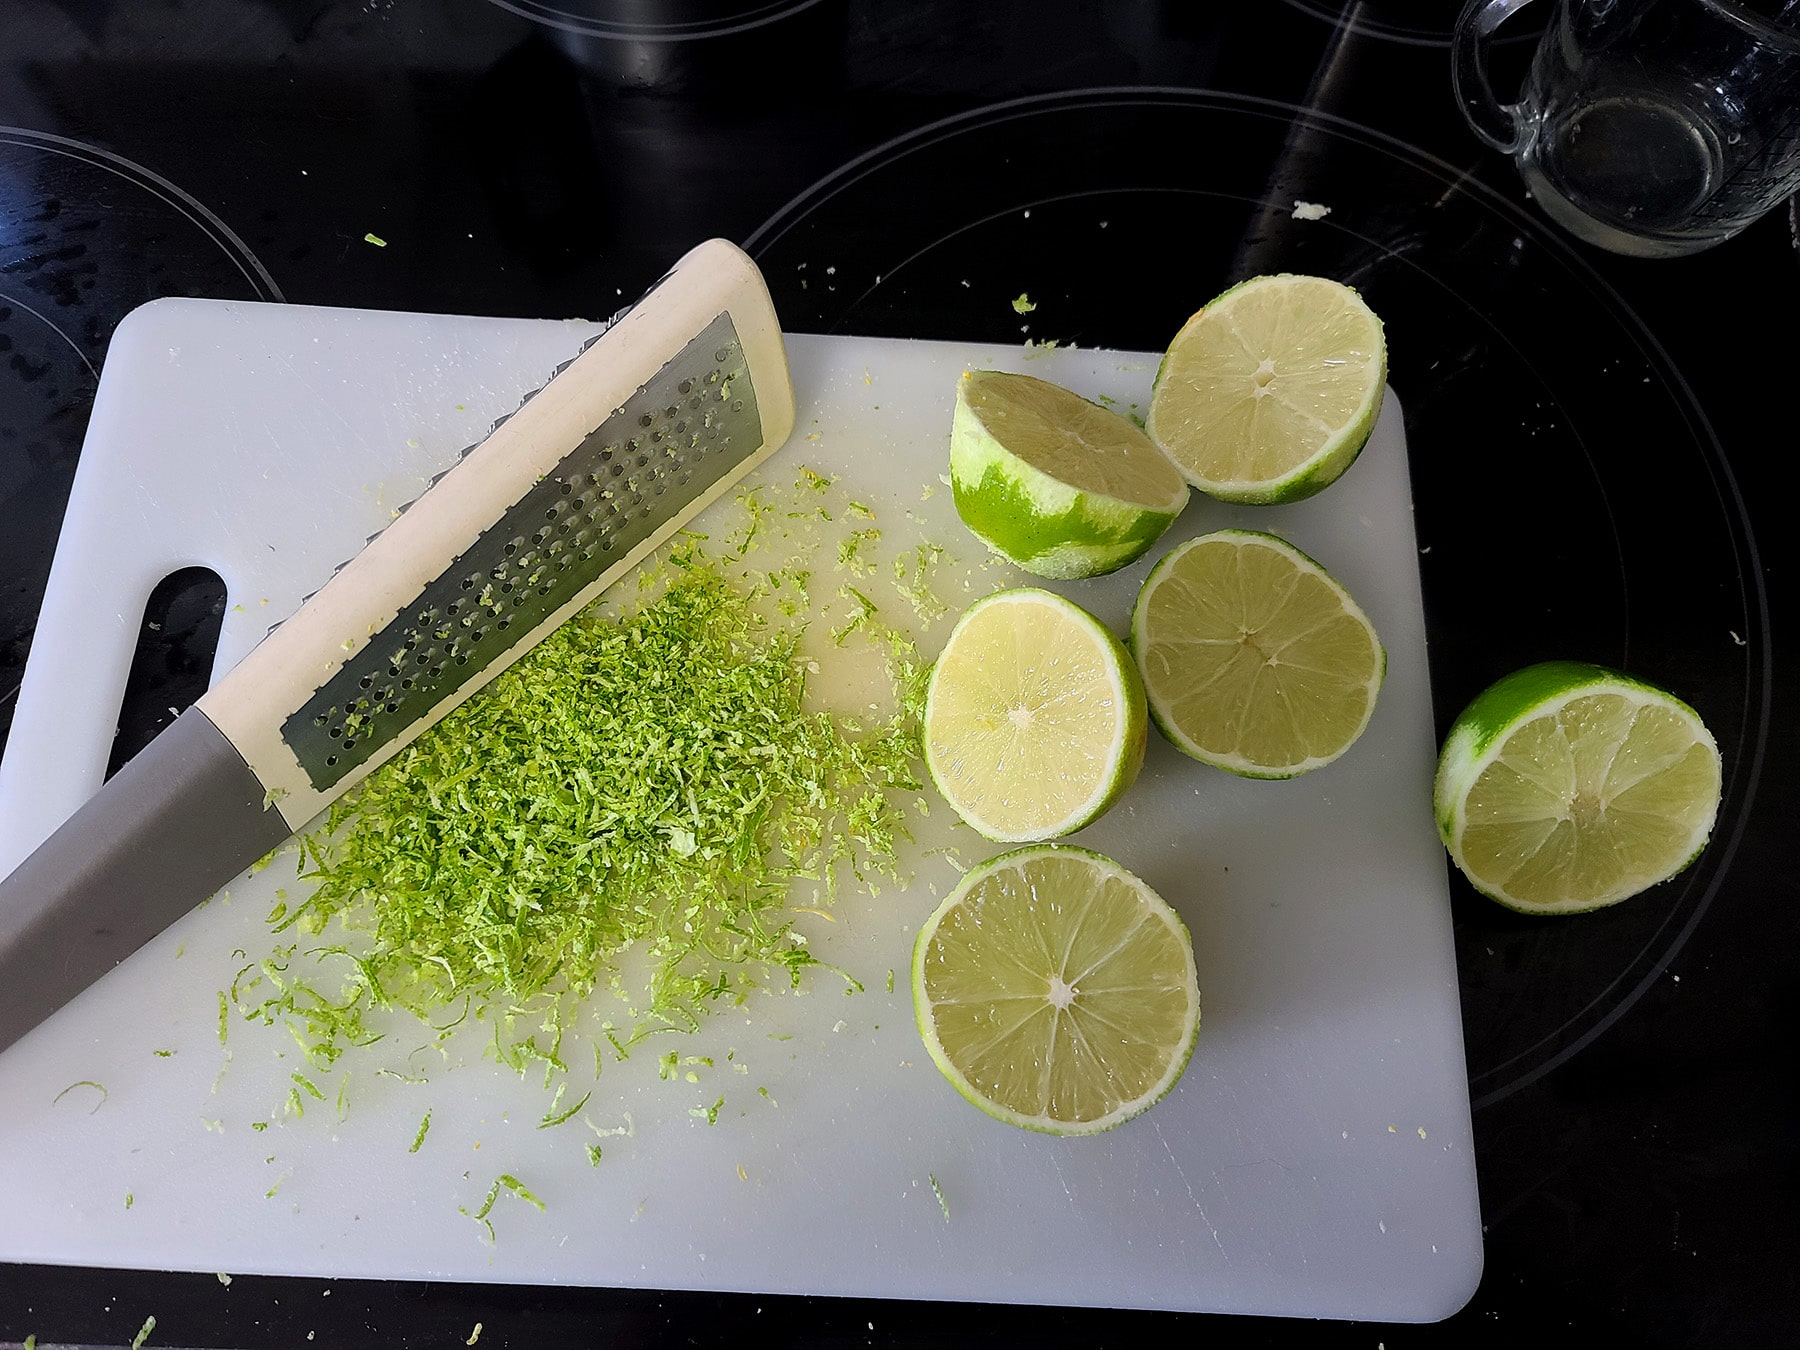 Several limes being zested on a white cutting board.